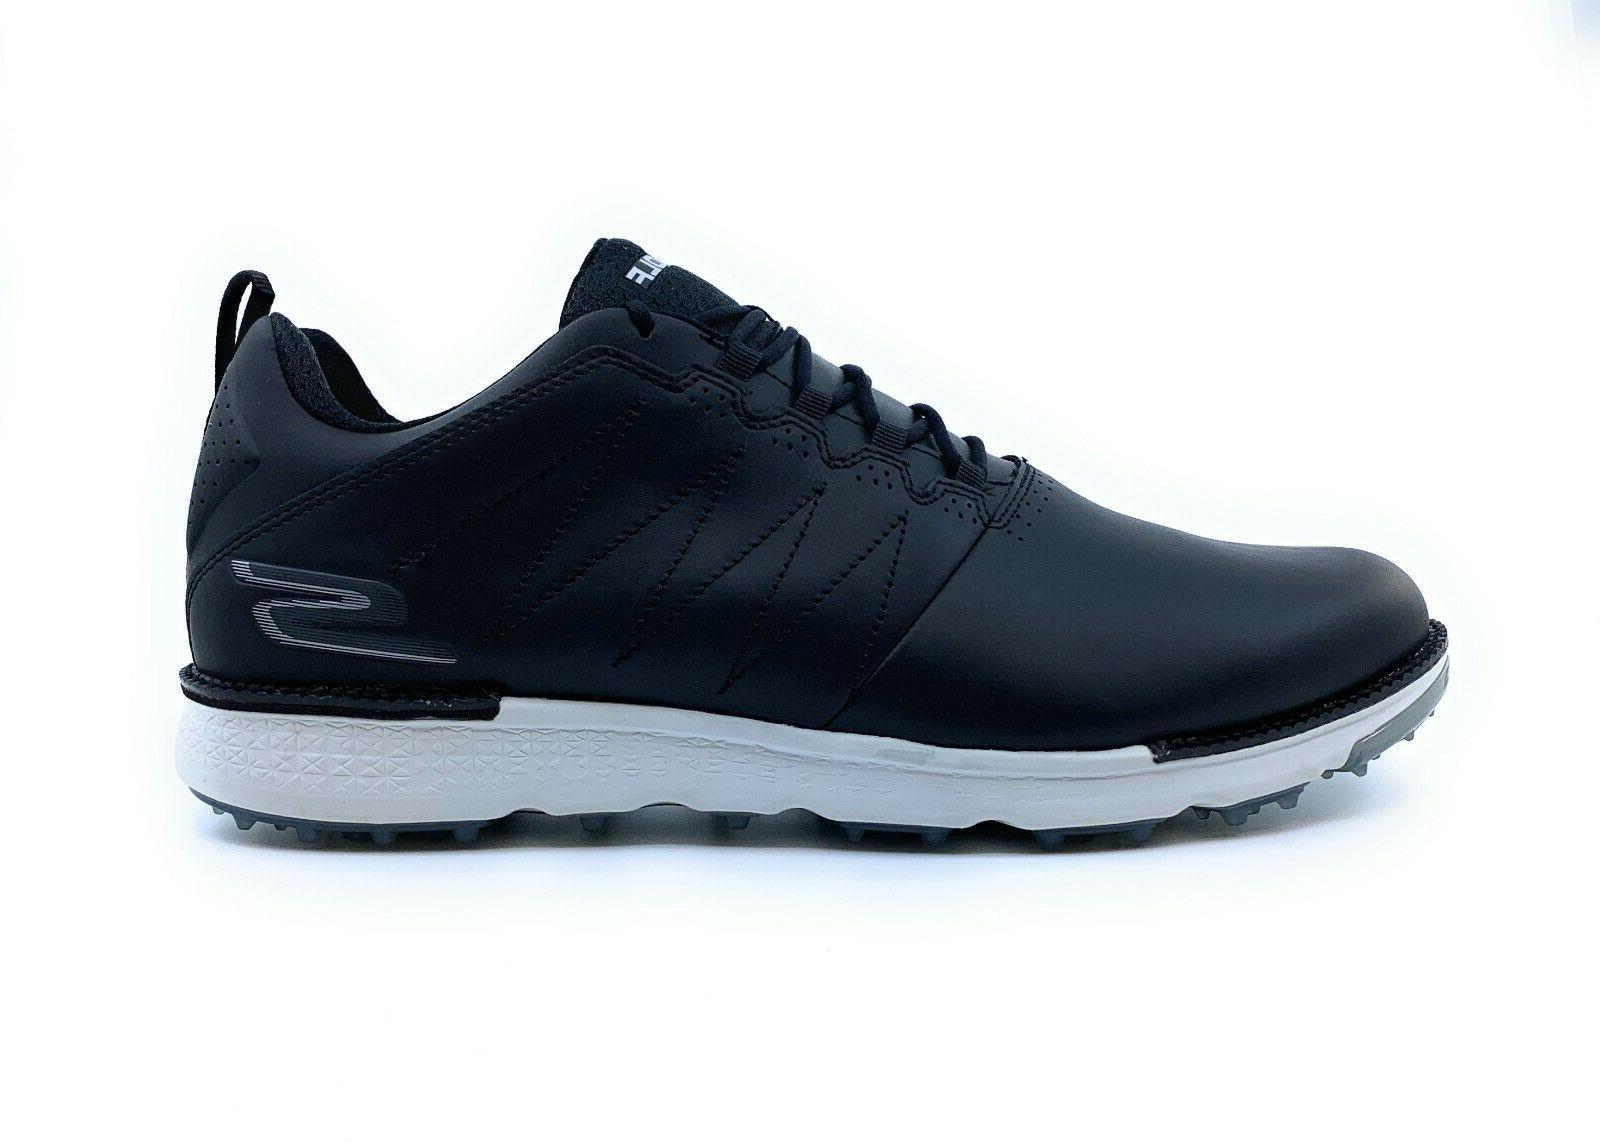 Skechers Comfort Shoes V.3 Plus Black/White